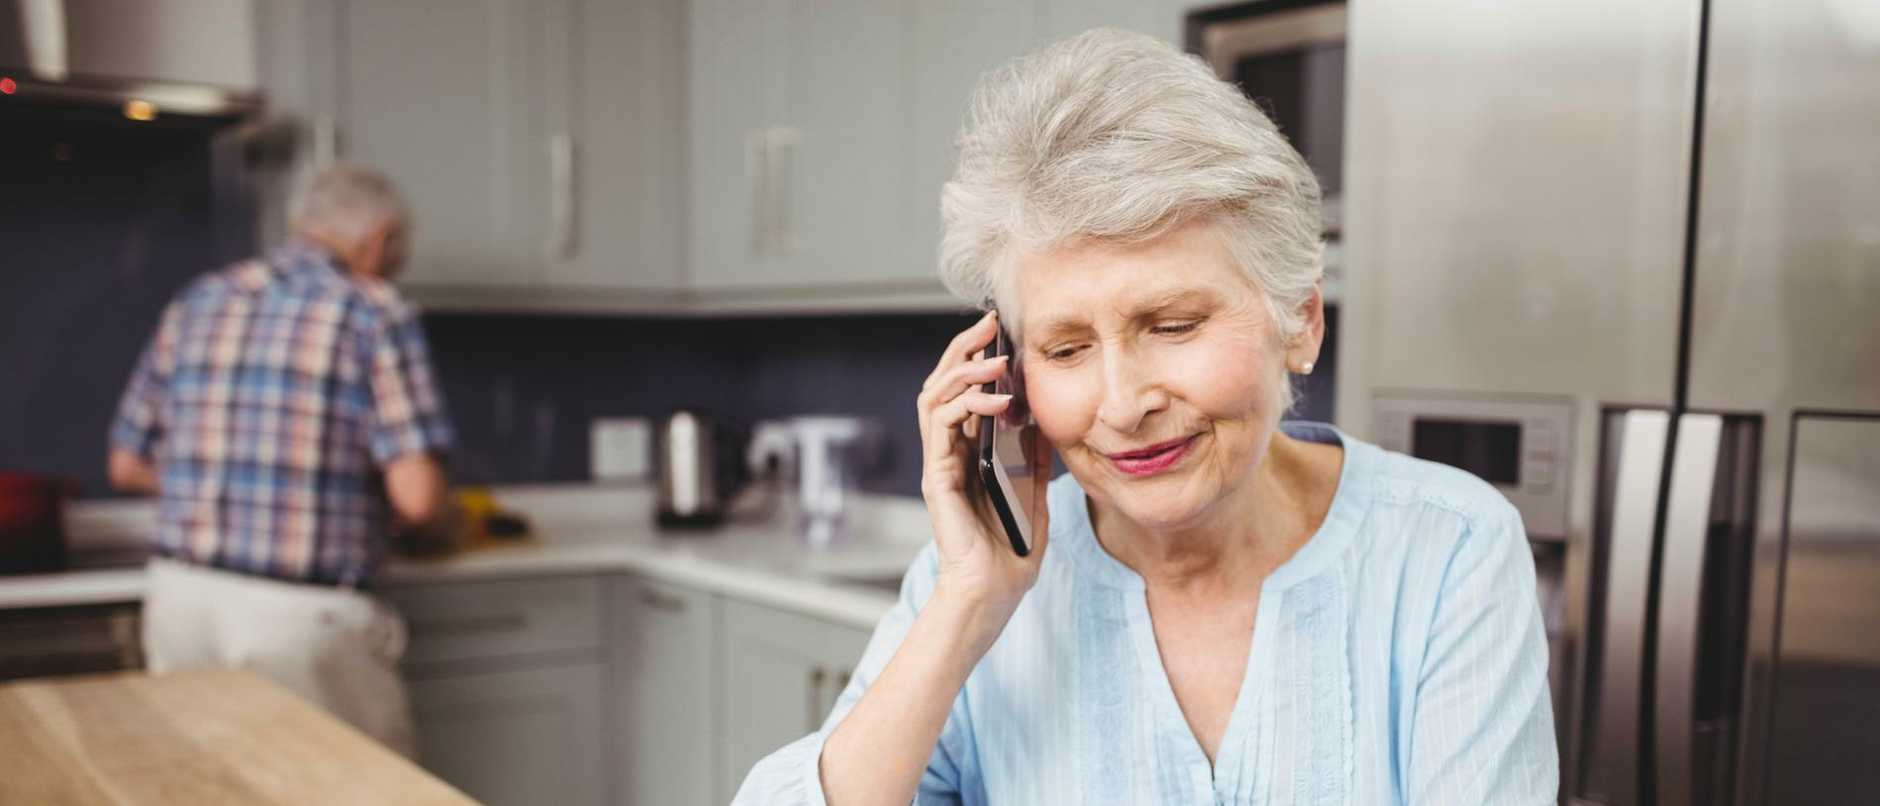 The Queensland Government has set up a new hotline for those people in self-quarantine for COVID-19 who can't get access to food or medicine.